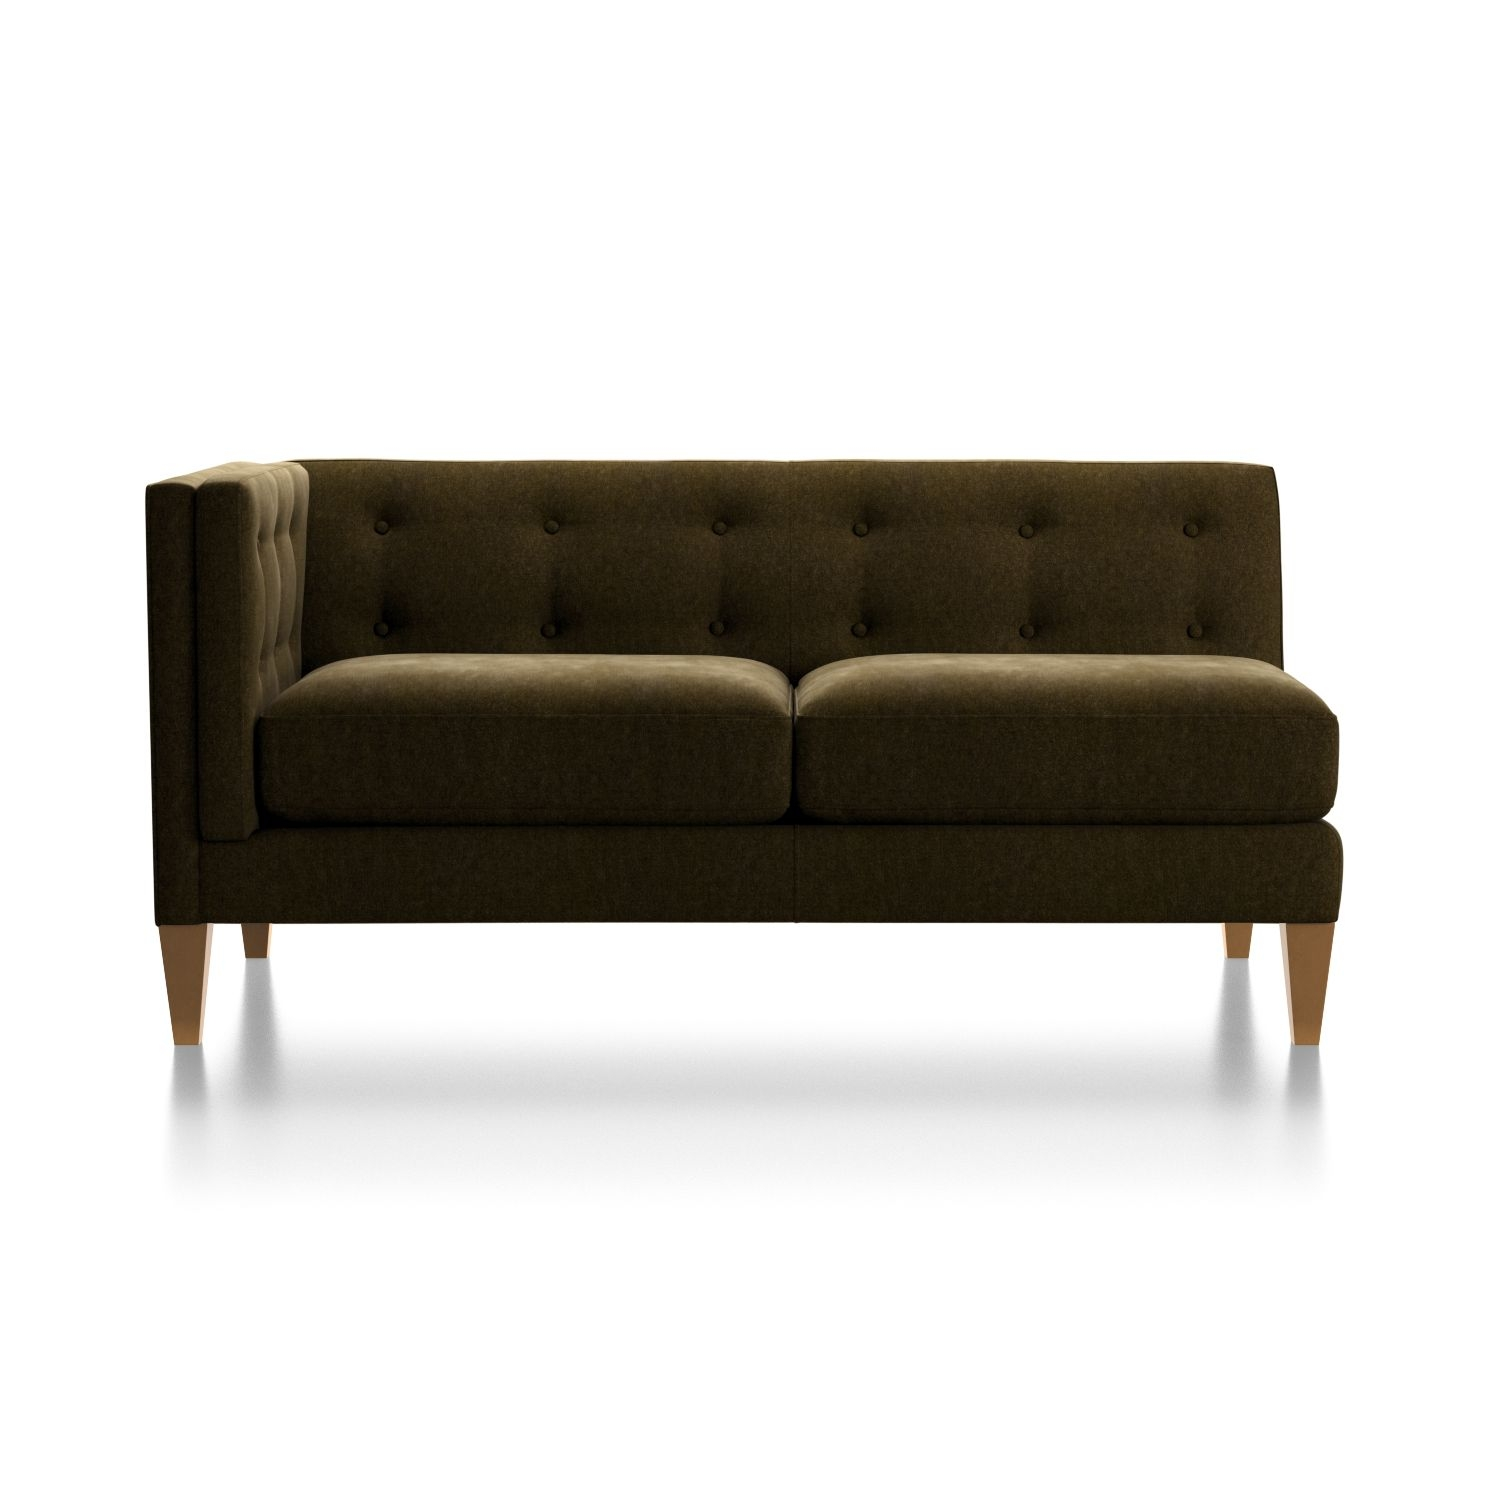 Aidan Velvet Left Arm Tufted Loveseat + Reviews | Crate And Barrel For Aidan 4 Piece Sectionals (View 21 of 25)